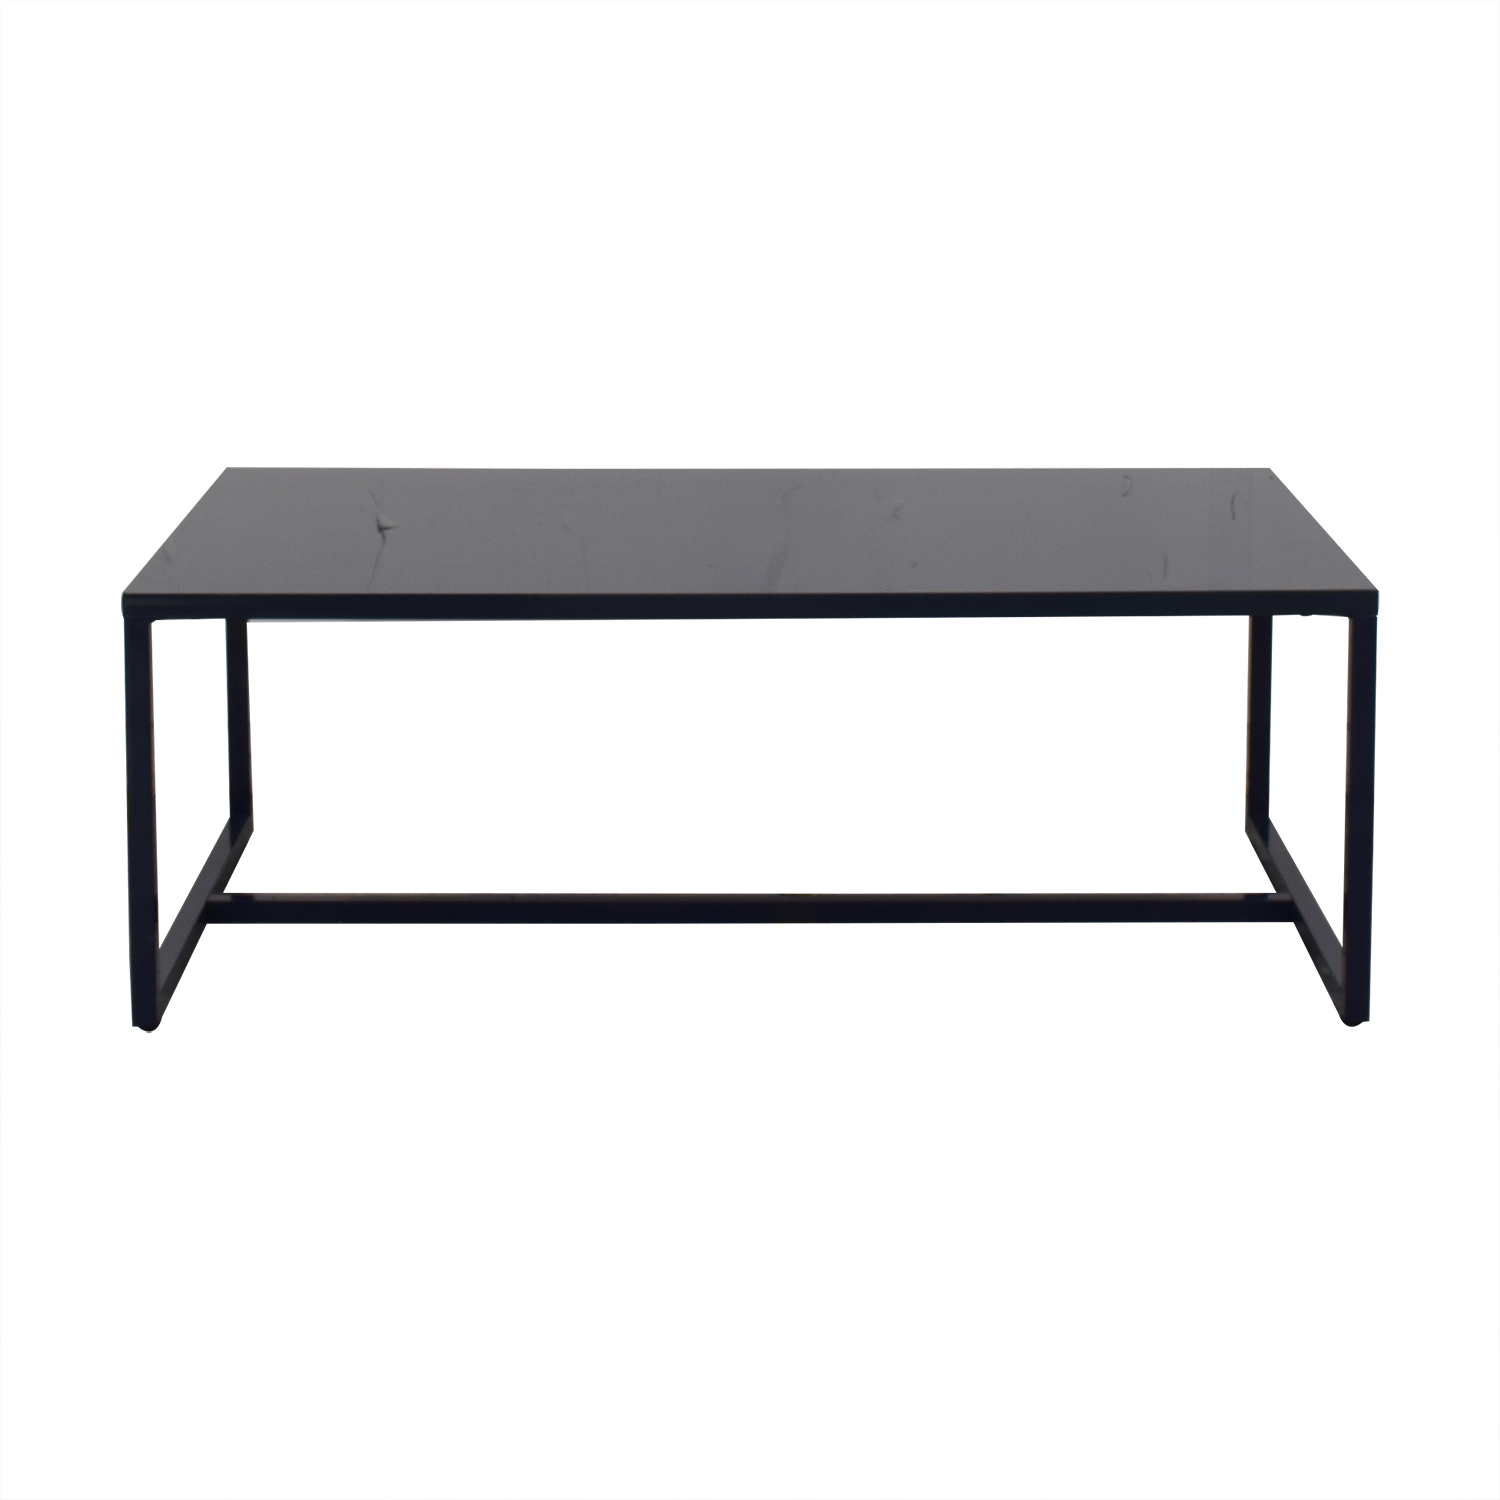 buy Crate & Barrel Frame Coffee Table Crate & Barrel Coffee Tables